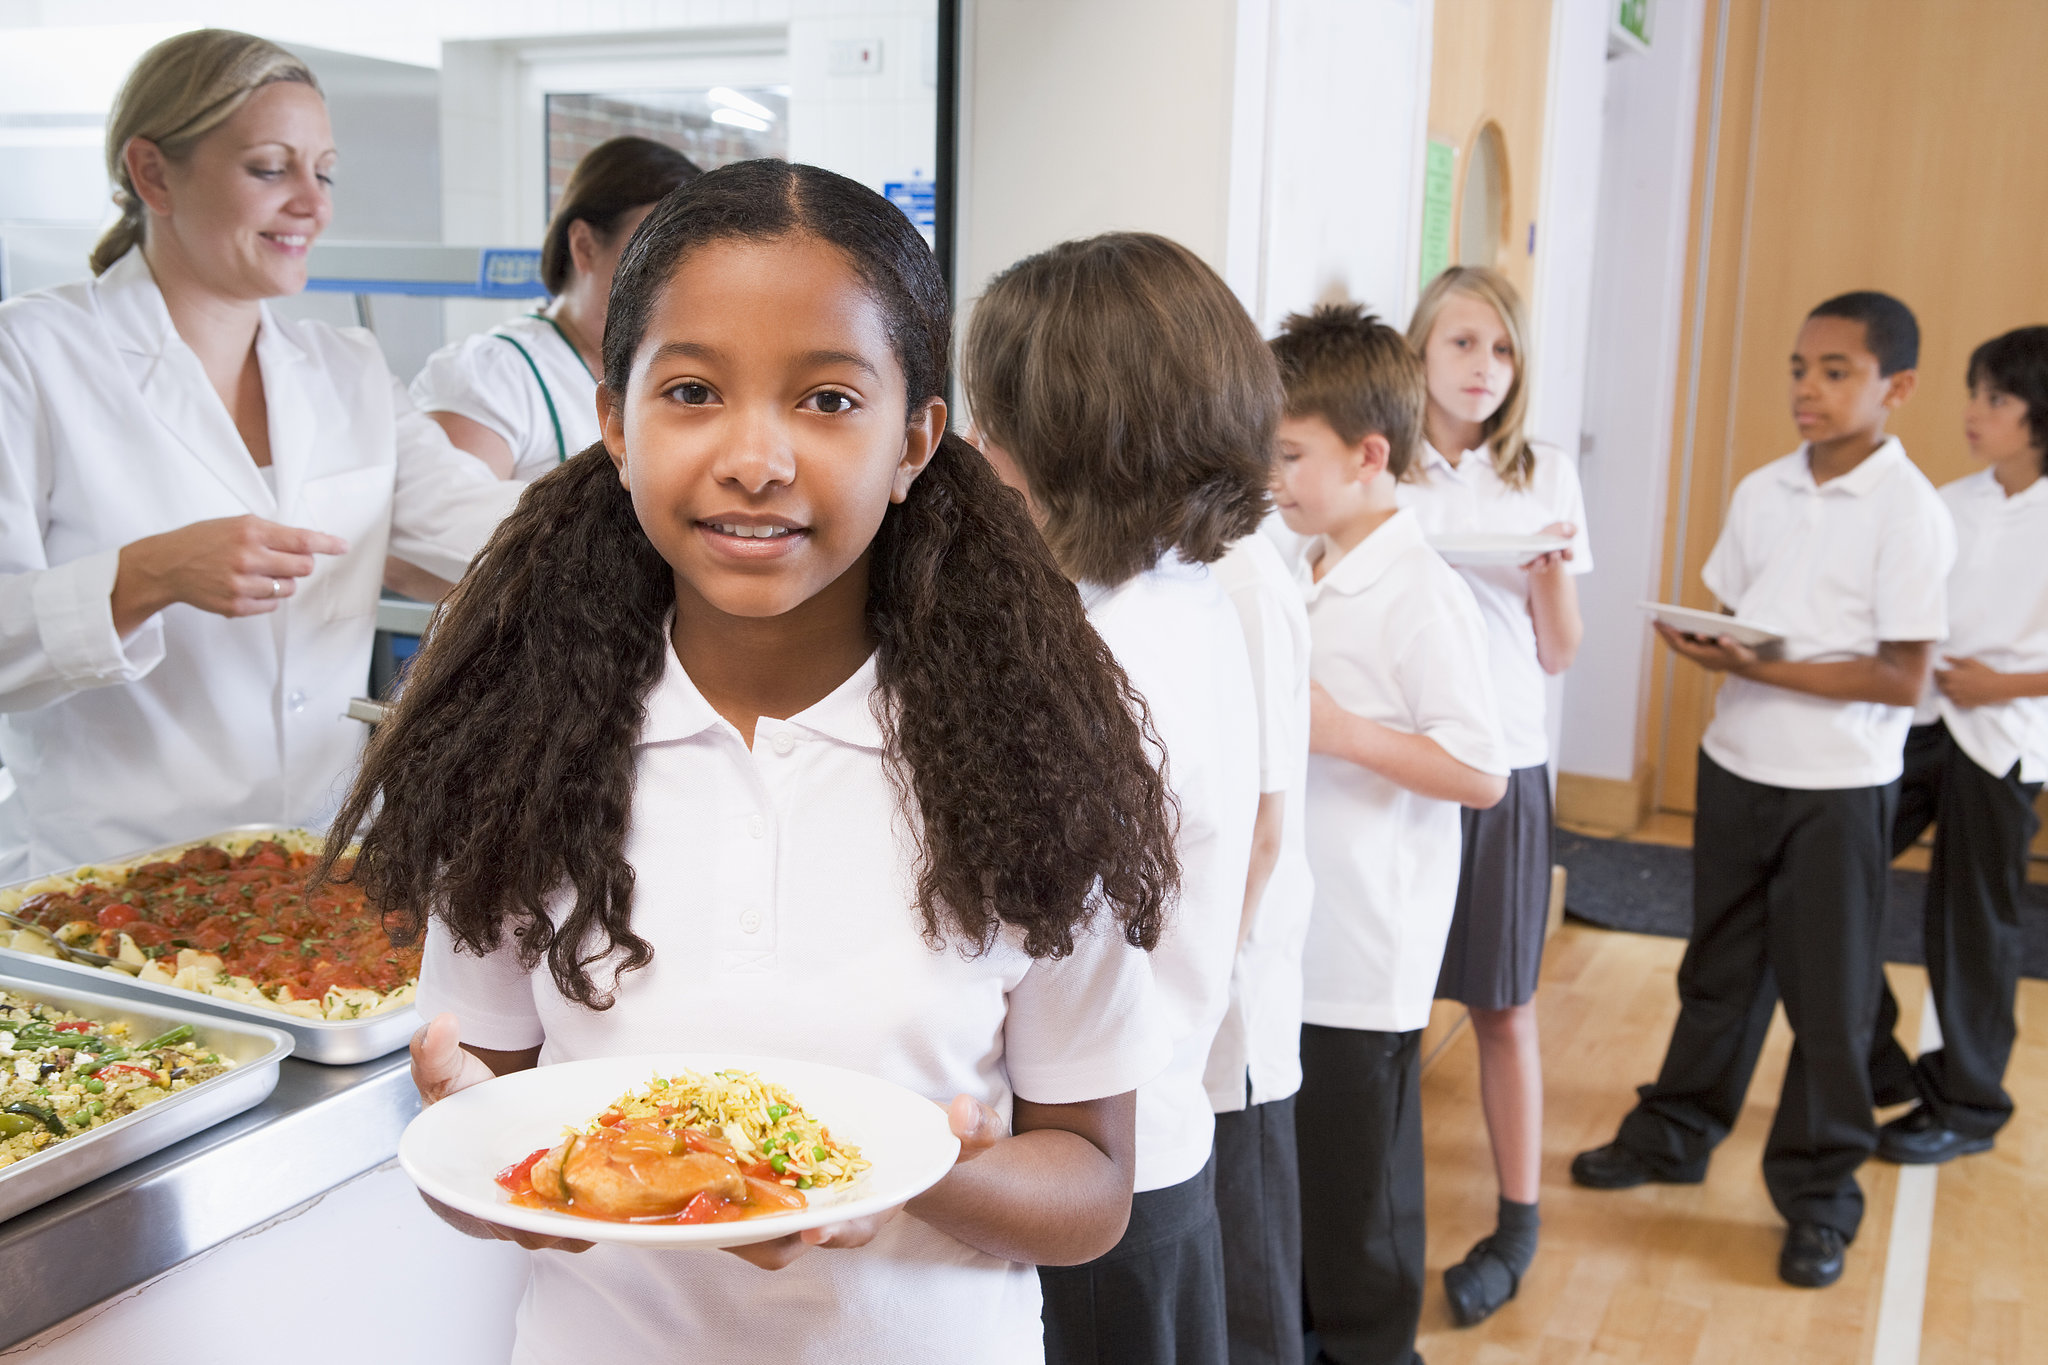 More Than Half of All School Districts Sell Fast Food to Kids